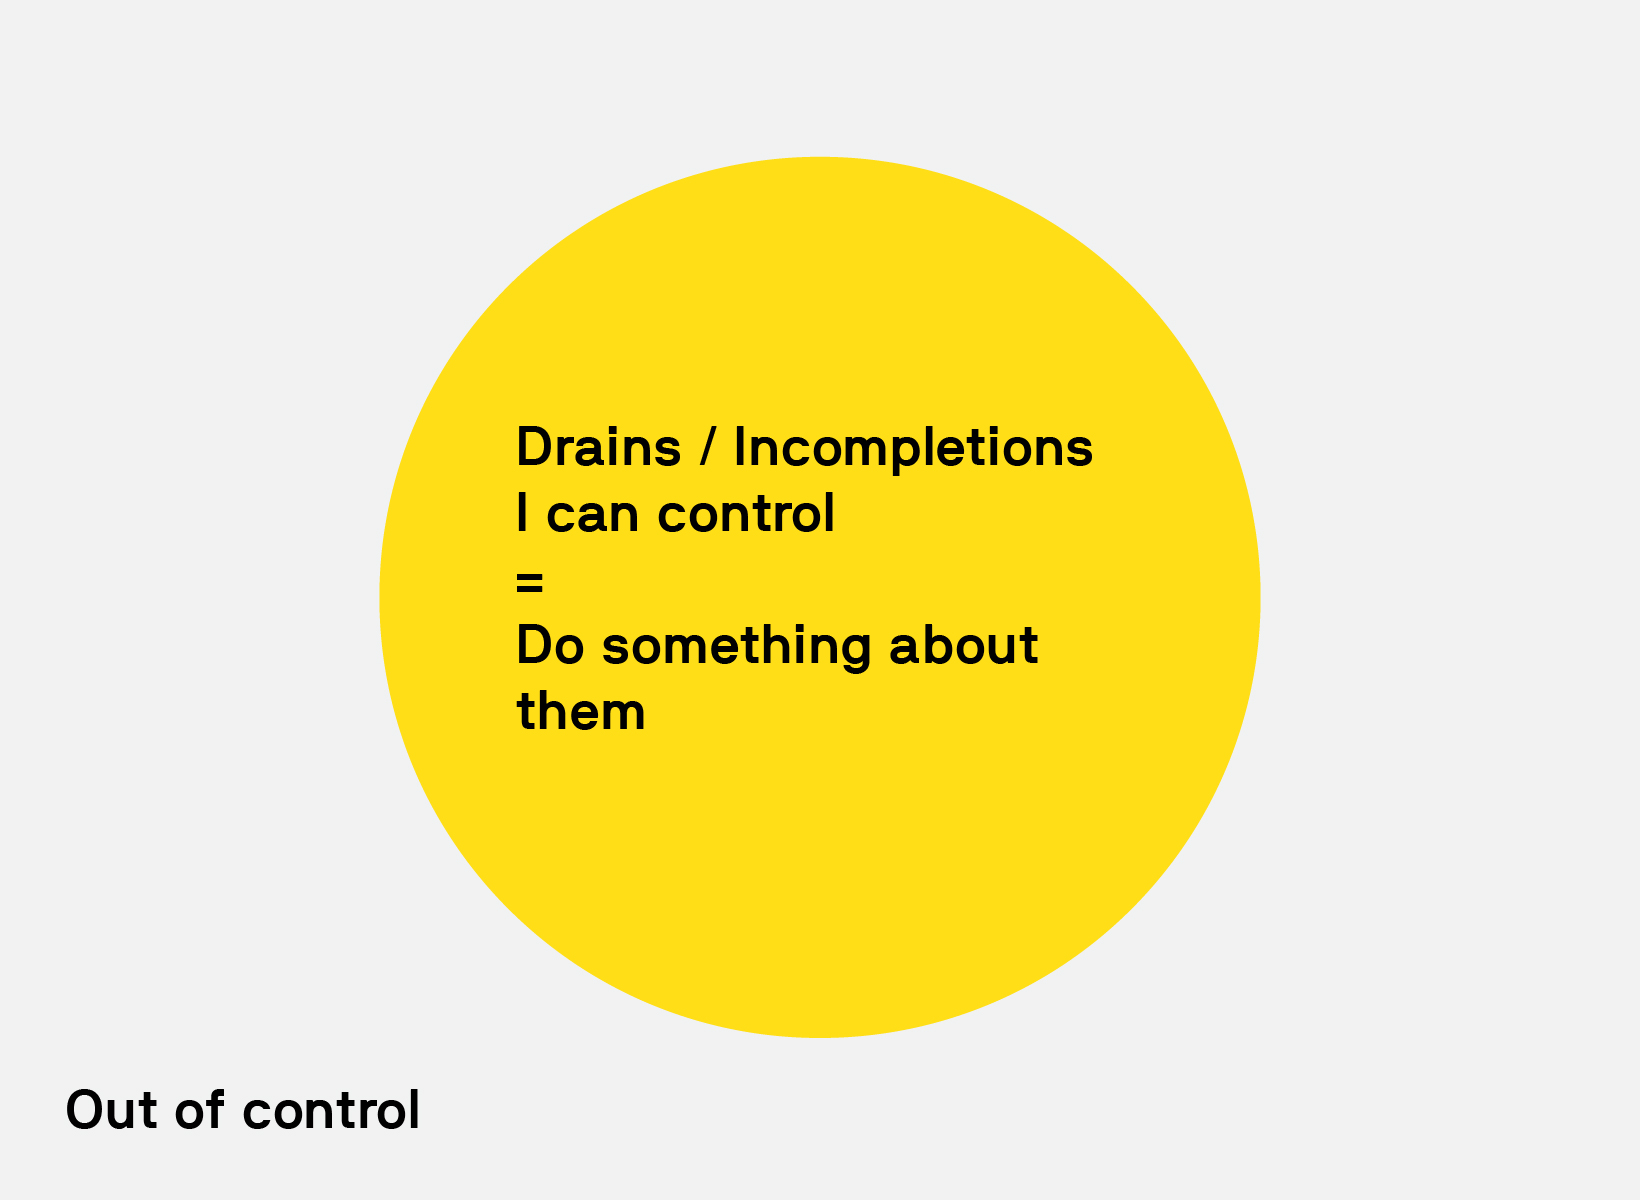 Drains and incompletions within your control and those outside your control.